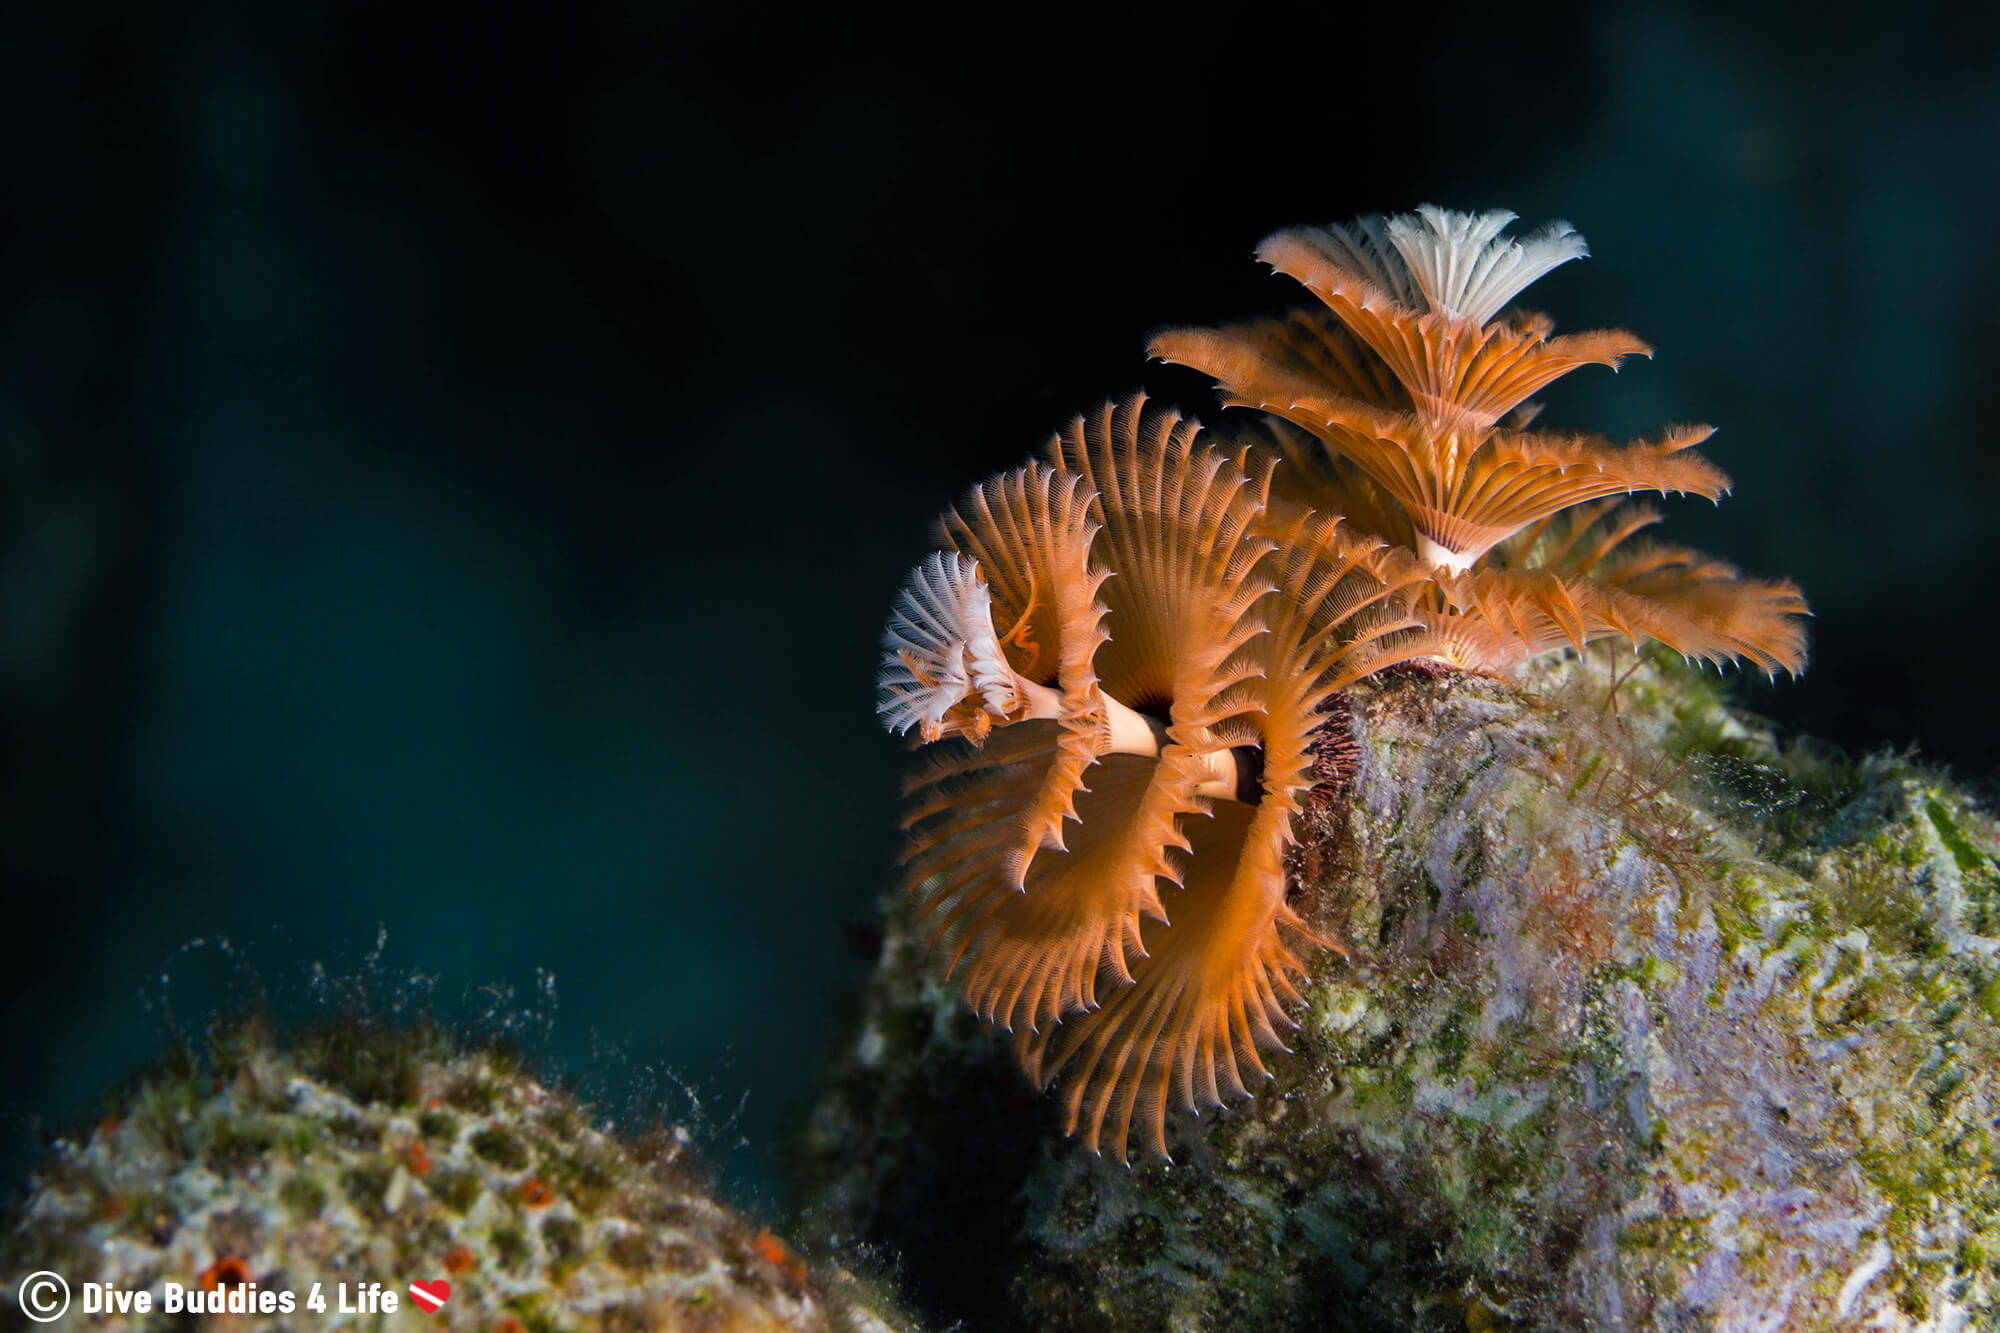 A Couple Of Christmas Tree Worms Burrowed In The Coral Of Bonaire Photographed On The Side Profile, Dutch Caribbean